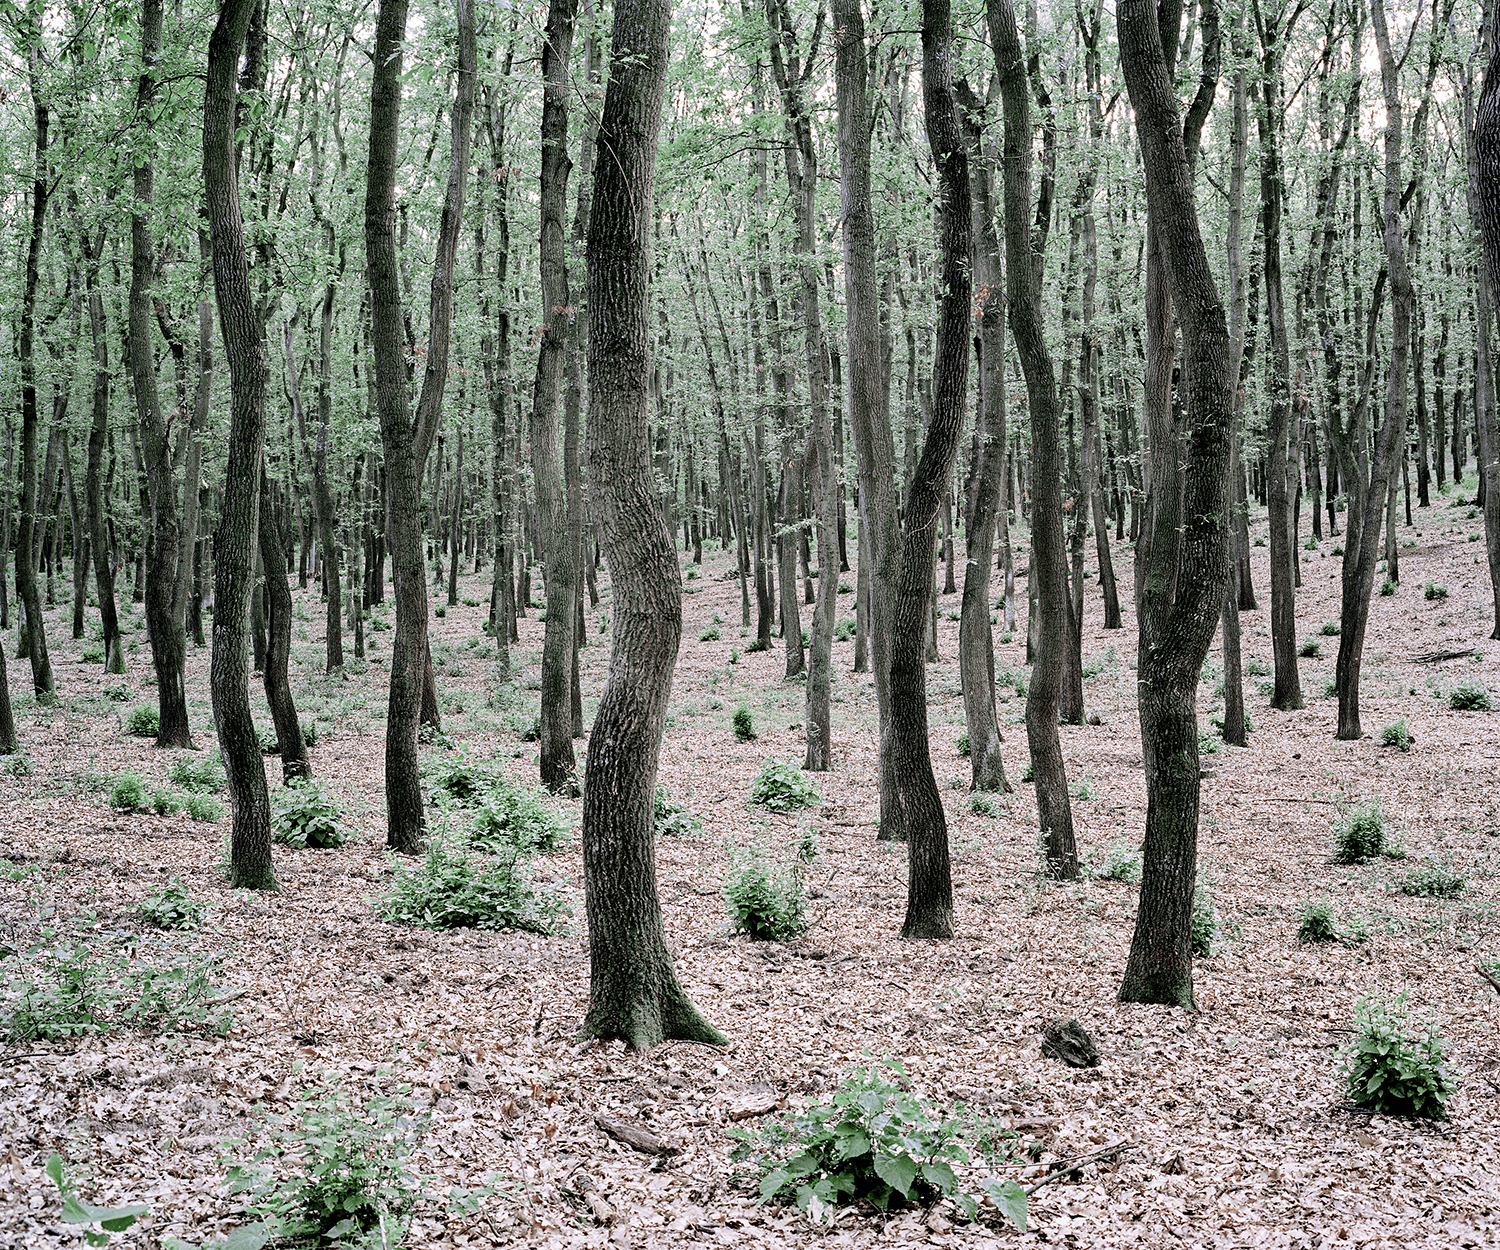 Green Bushes  from the series  Green Silence   Dániel Kovalovszky  Archival pigment print 7.5 x 9, Edition of 5, signed and numbered $120